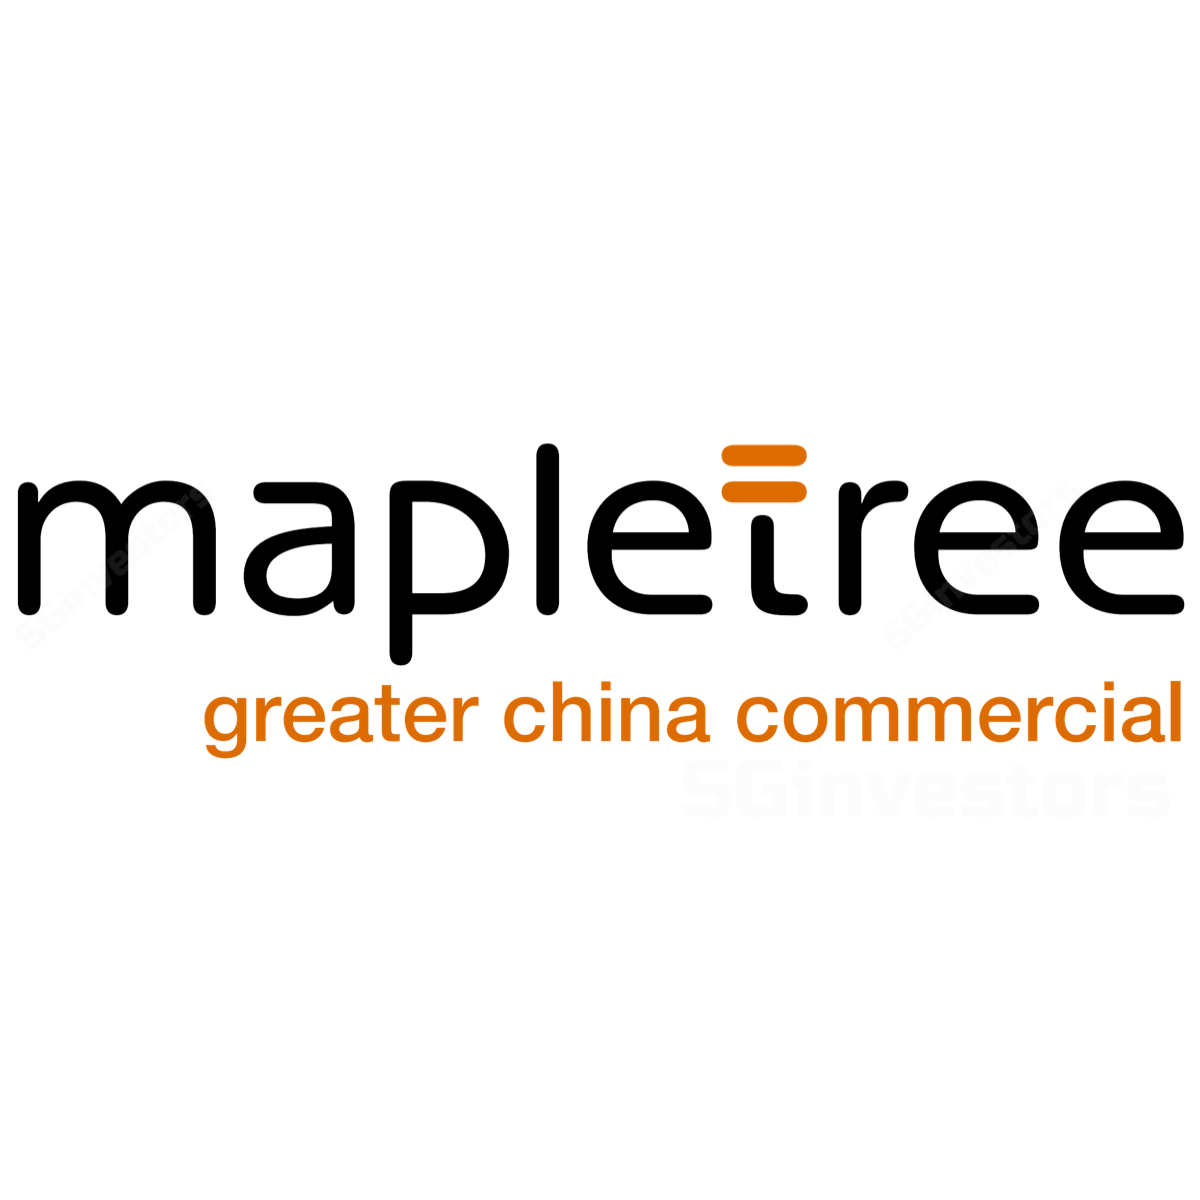 Mapletree Greater China Commercial Trust - DBS Vickers 2017-10-24: Join The Magical Ride